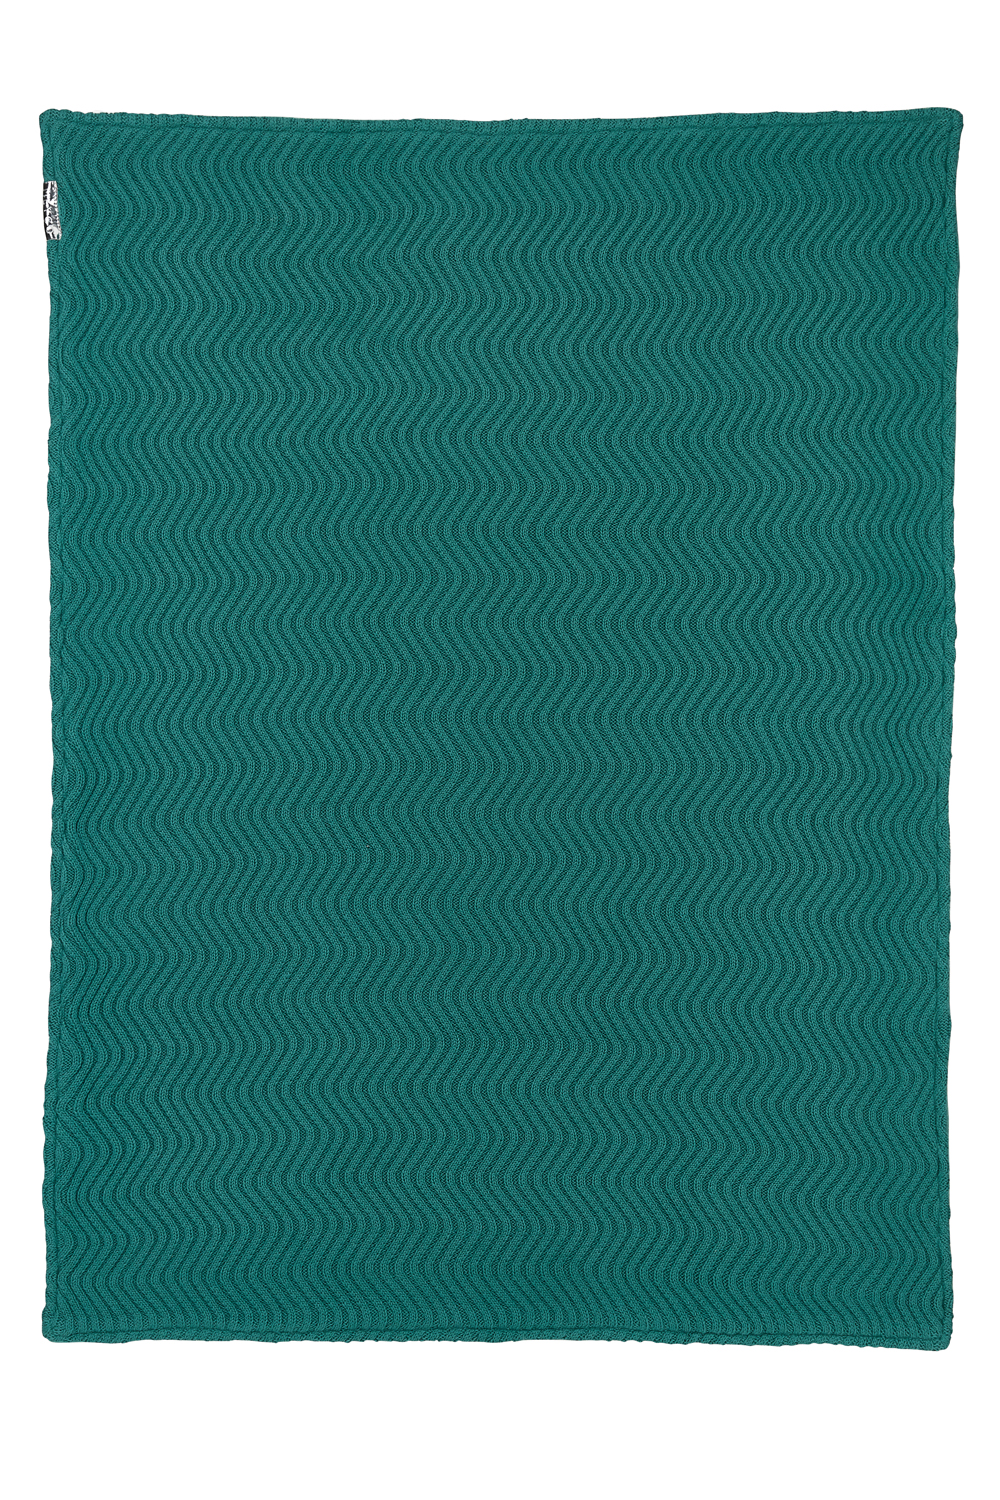 Wiegdeken Velvet The Waves - Emerald Green - 75x100cm